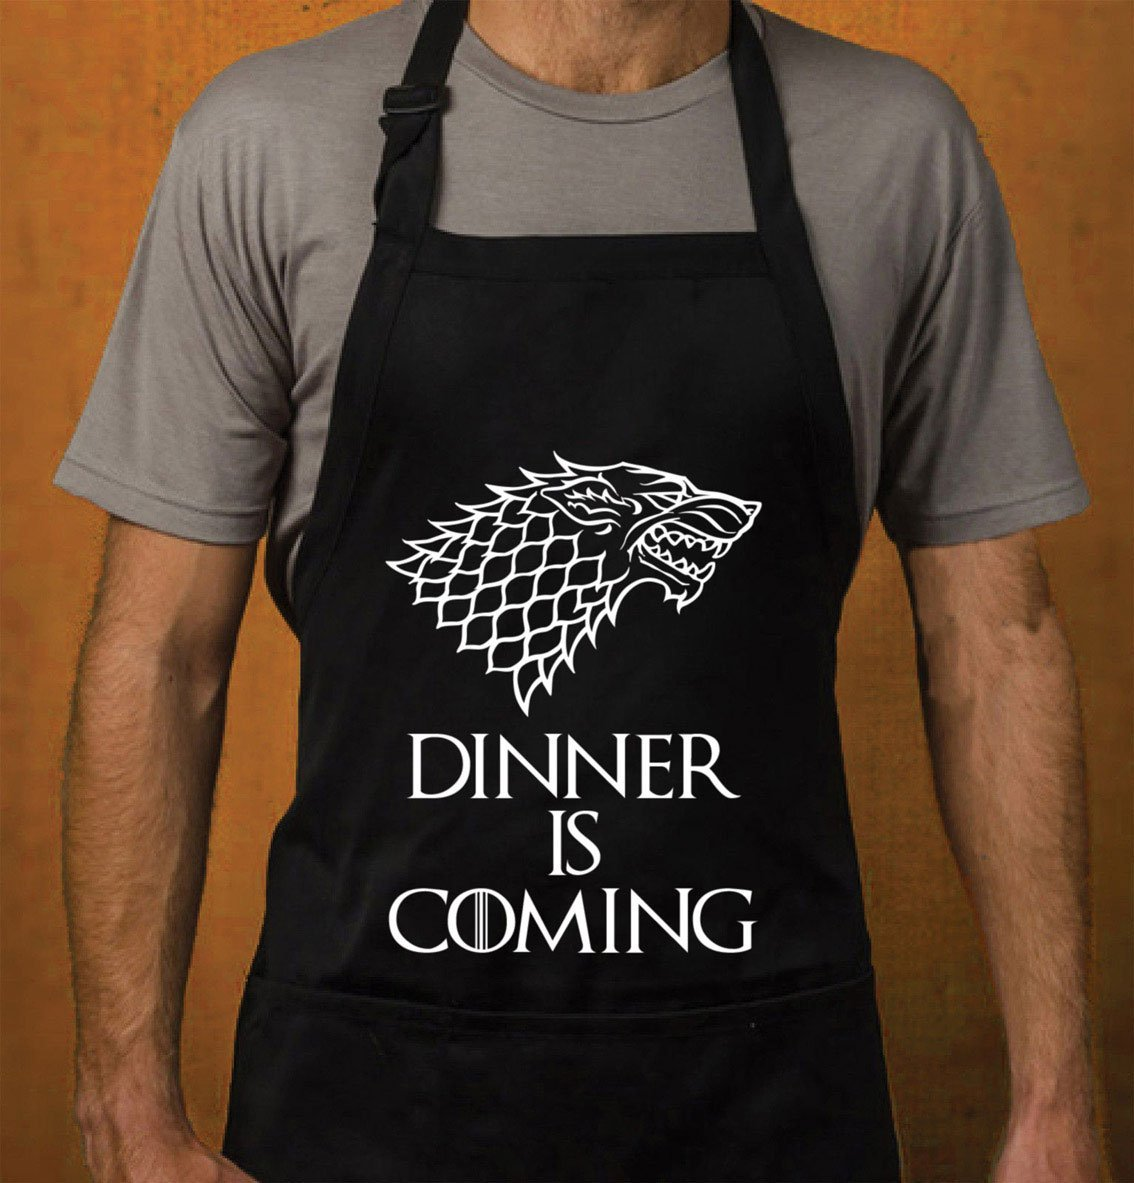 Game of thrones grill apron gift idea for men and women for Game of thrones gifts for men